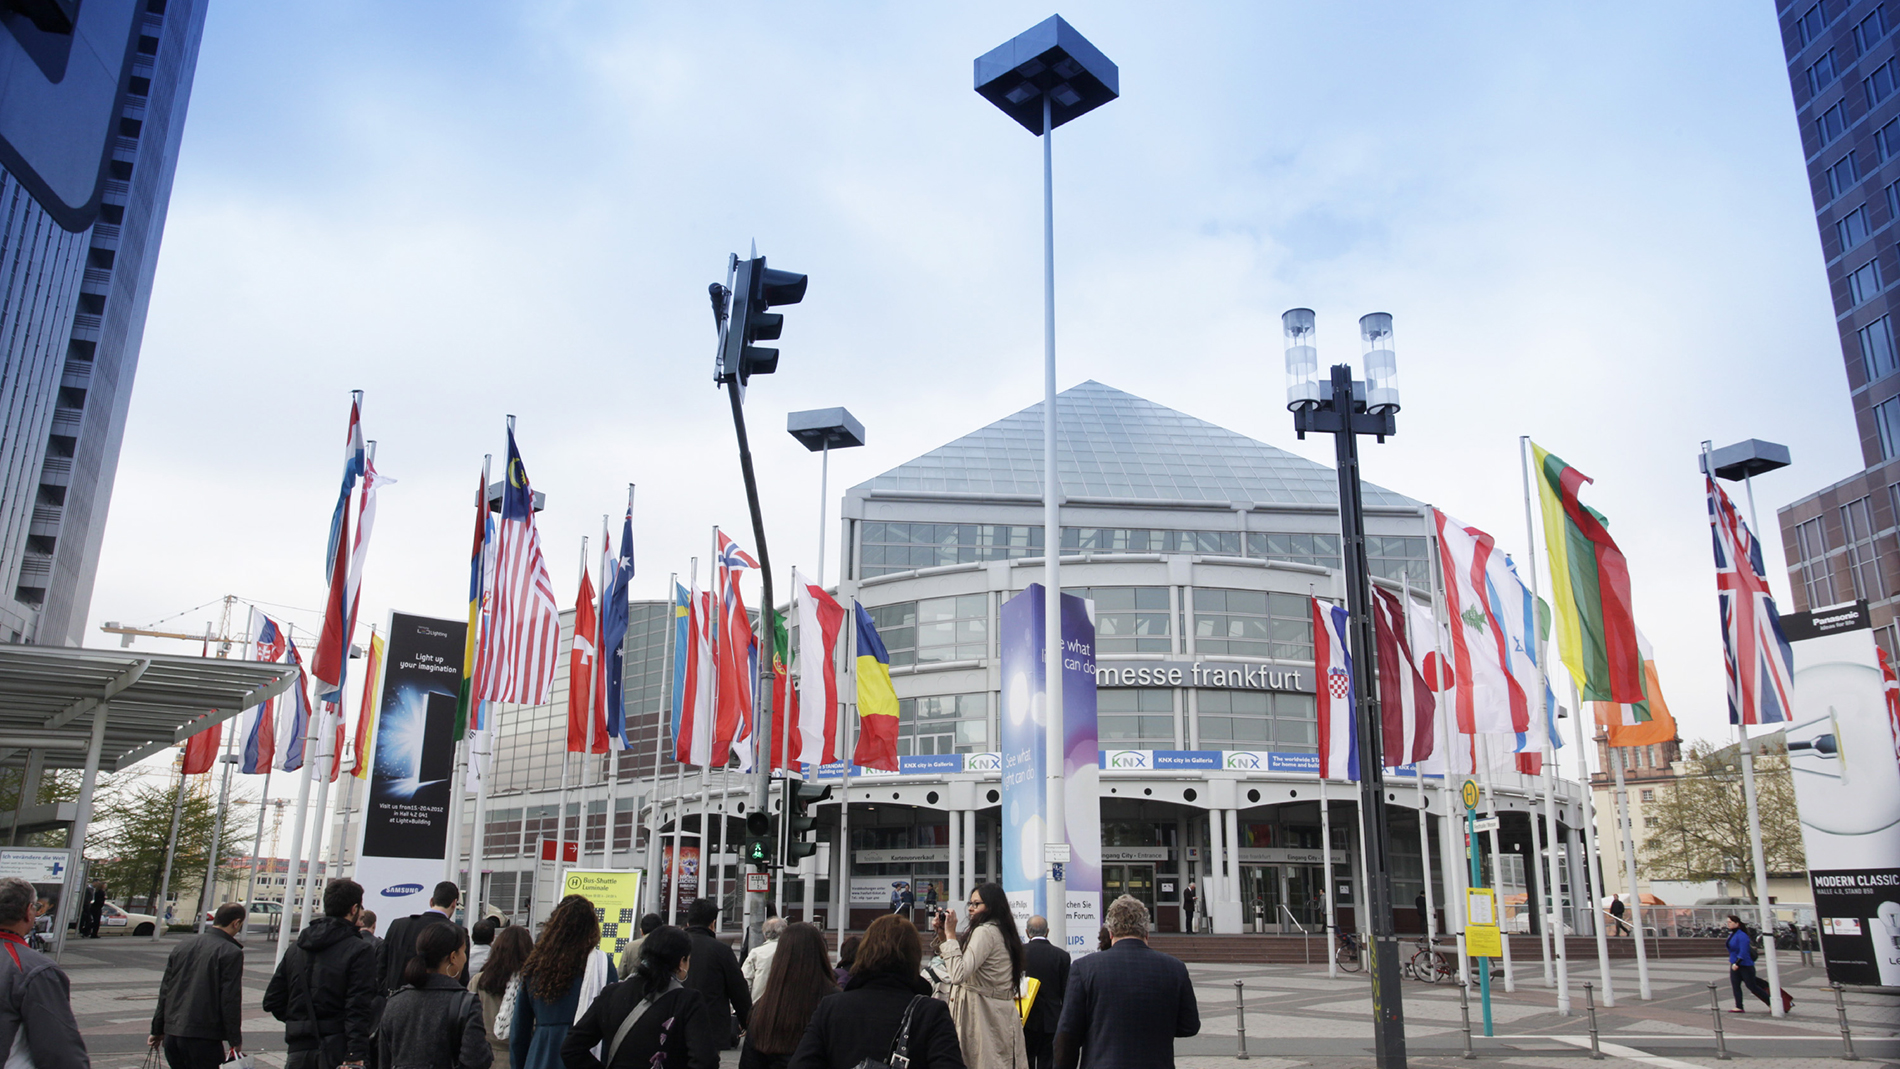 In 2019, France is the Partner Country of ISH – the world's leading trade fair for HVAC + Water – in Frankfurt am Main (Source: Messe Frankfurt Exhibition GmbH)